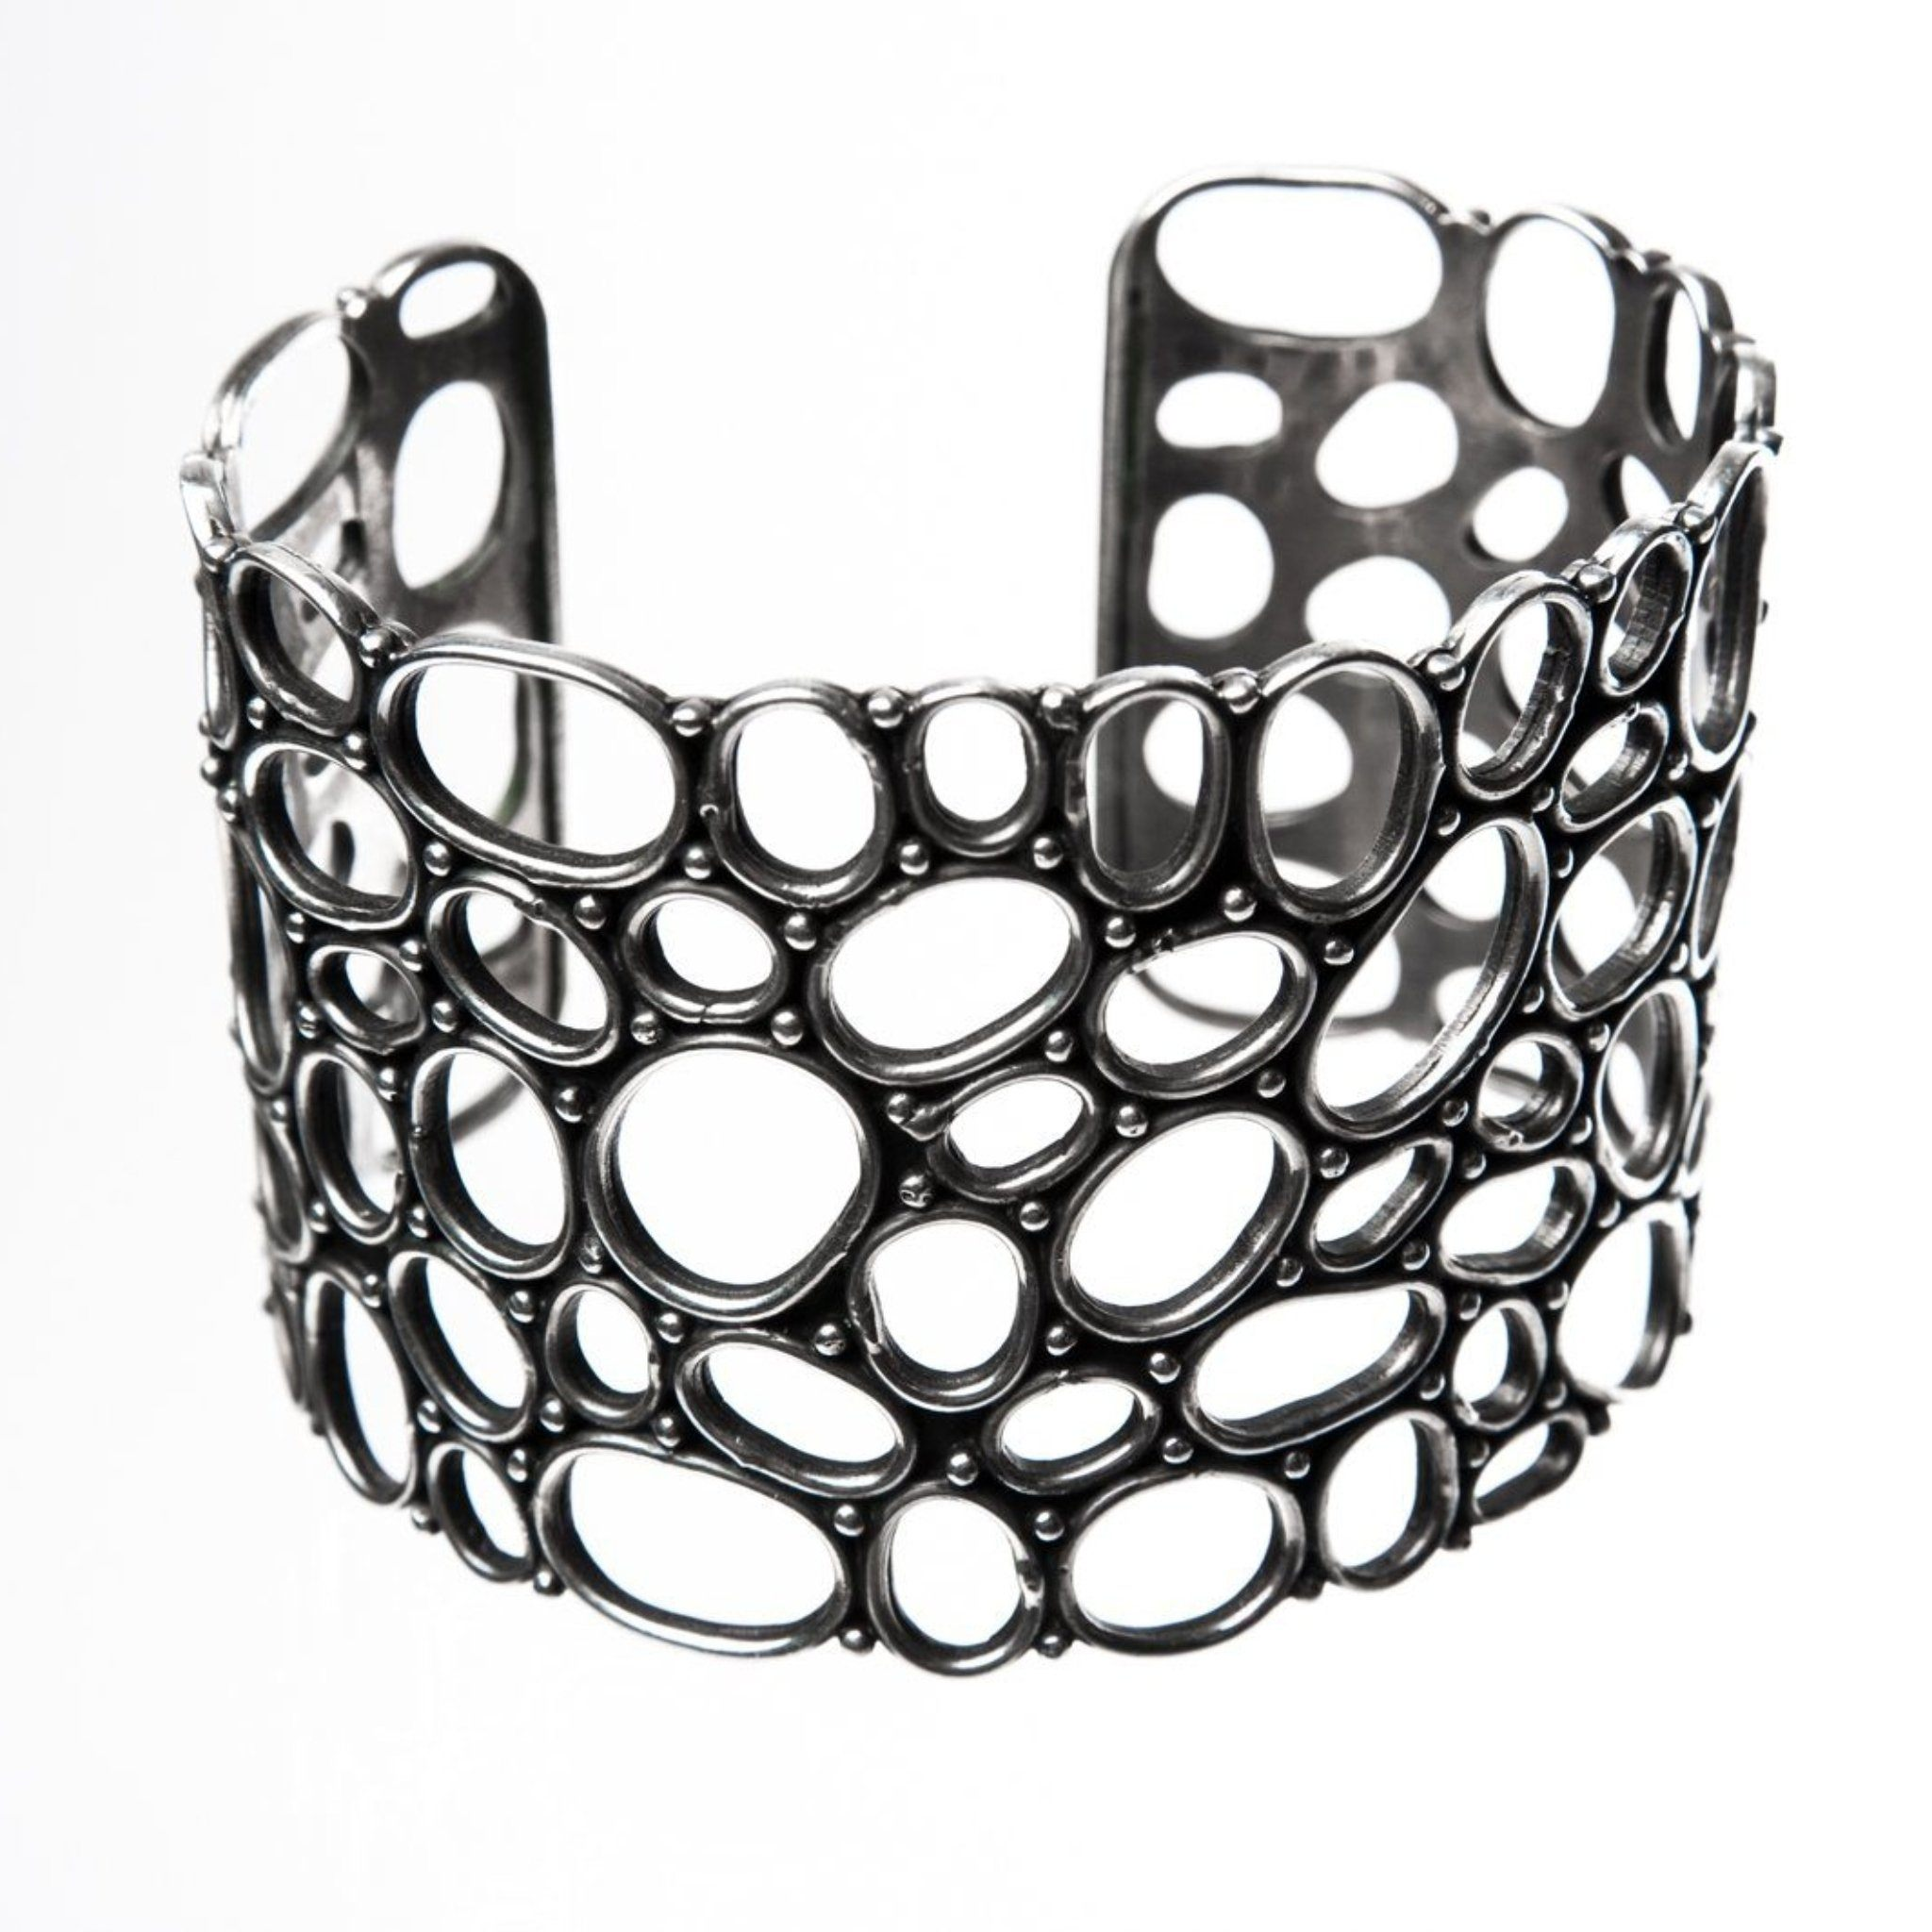 Bubble Cuff Bracelet Dambar International